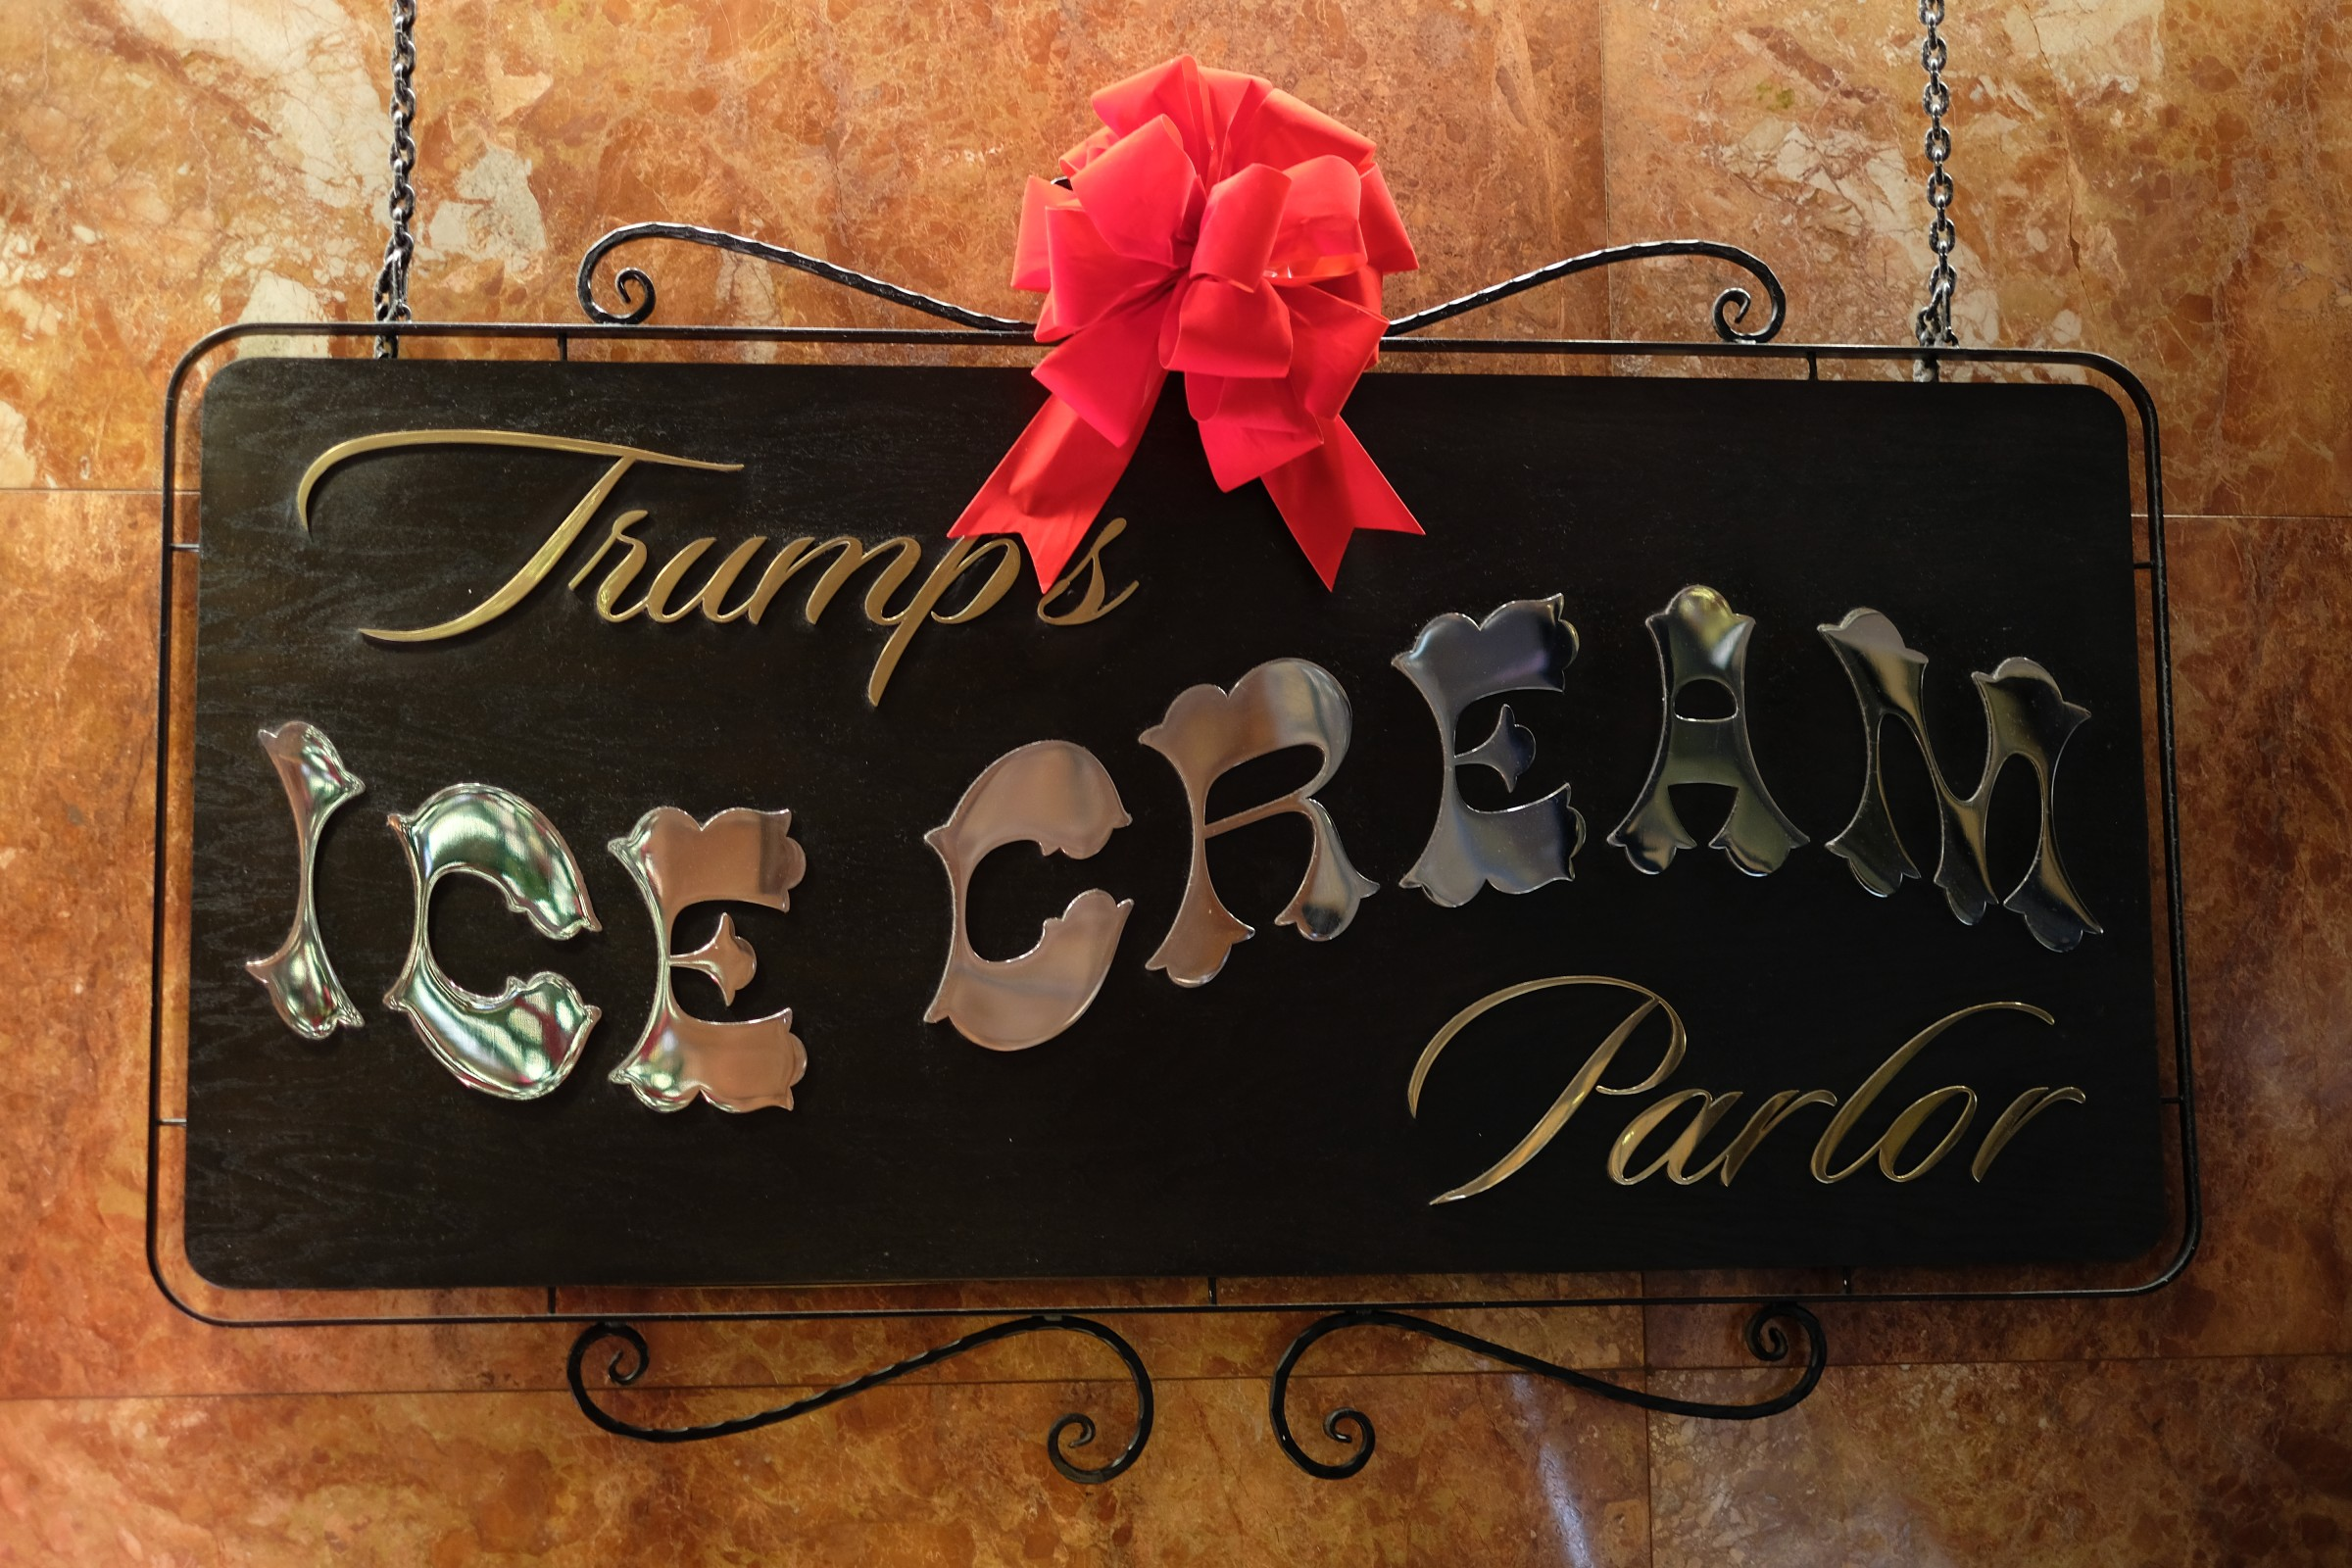 ice cream sign inside Trump Tower